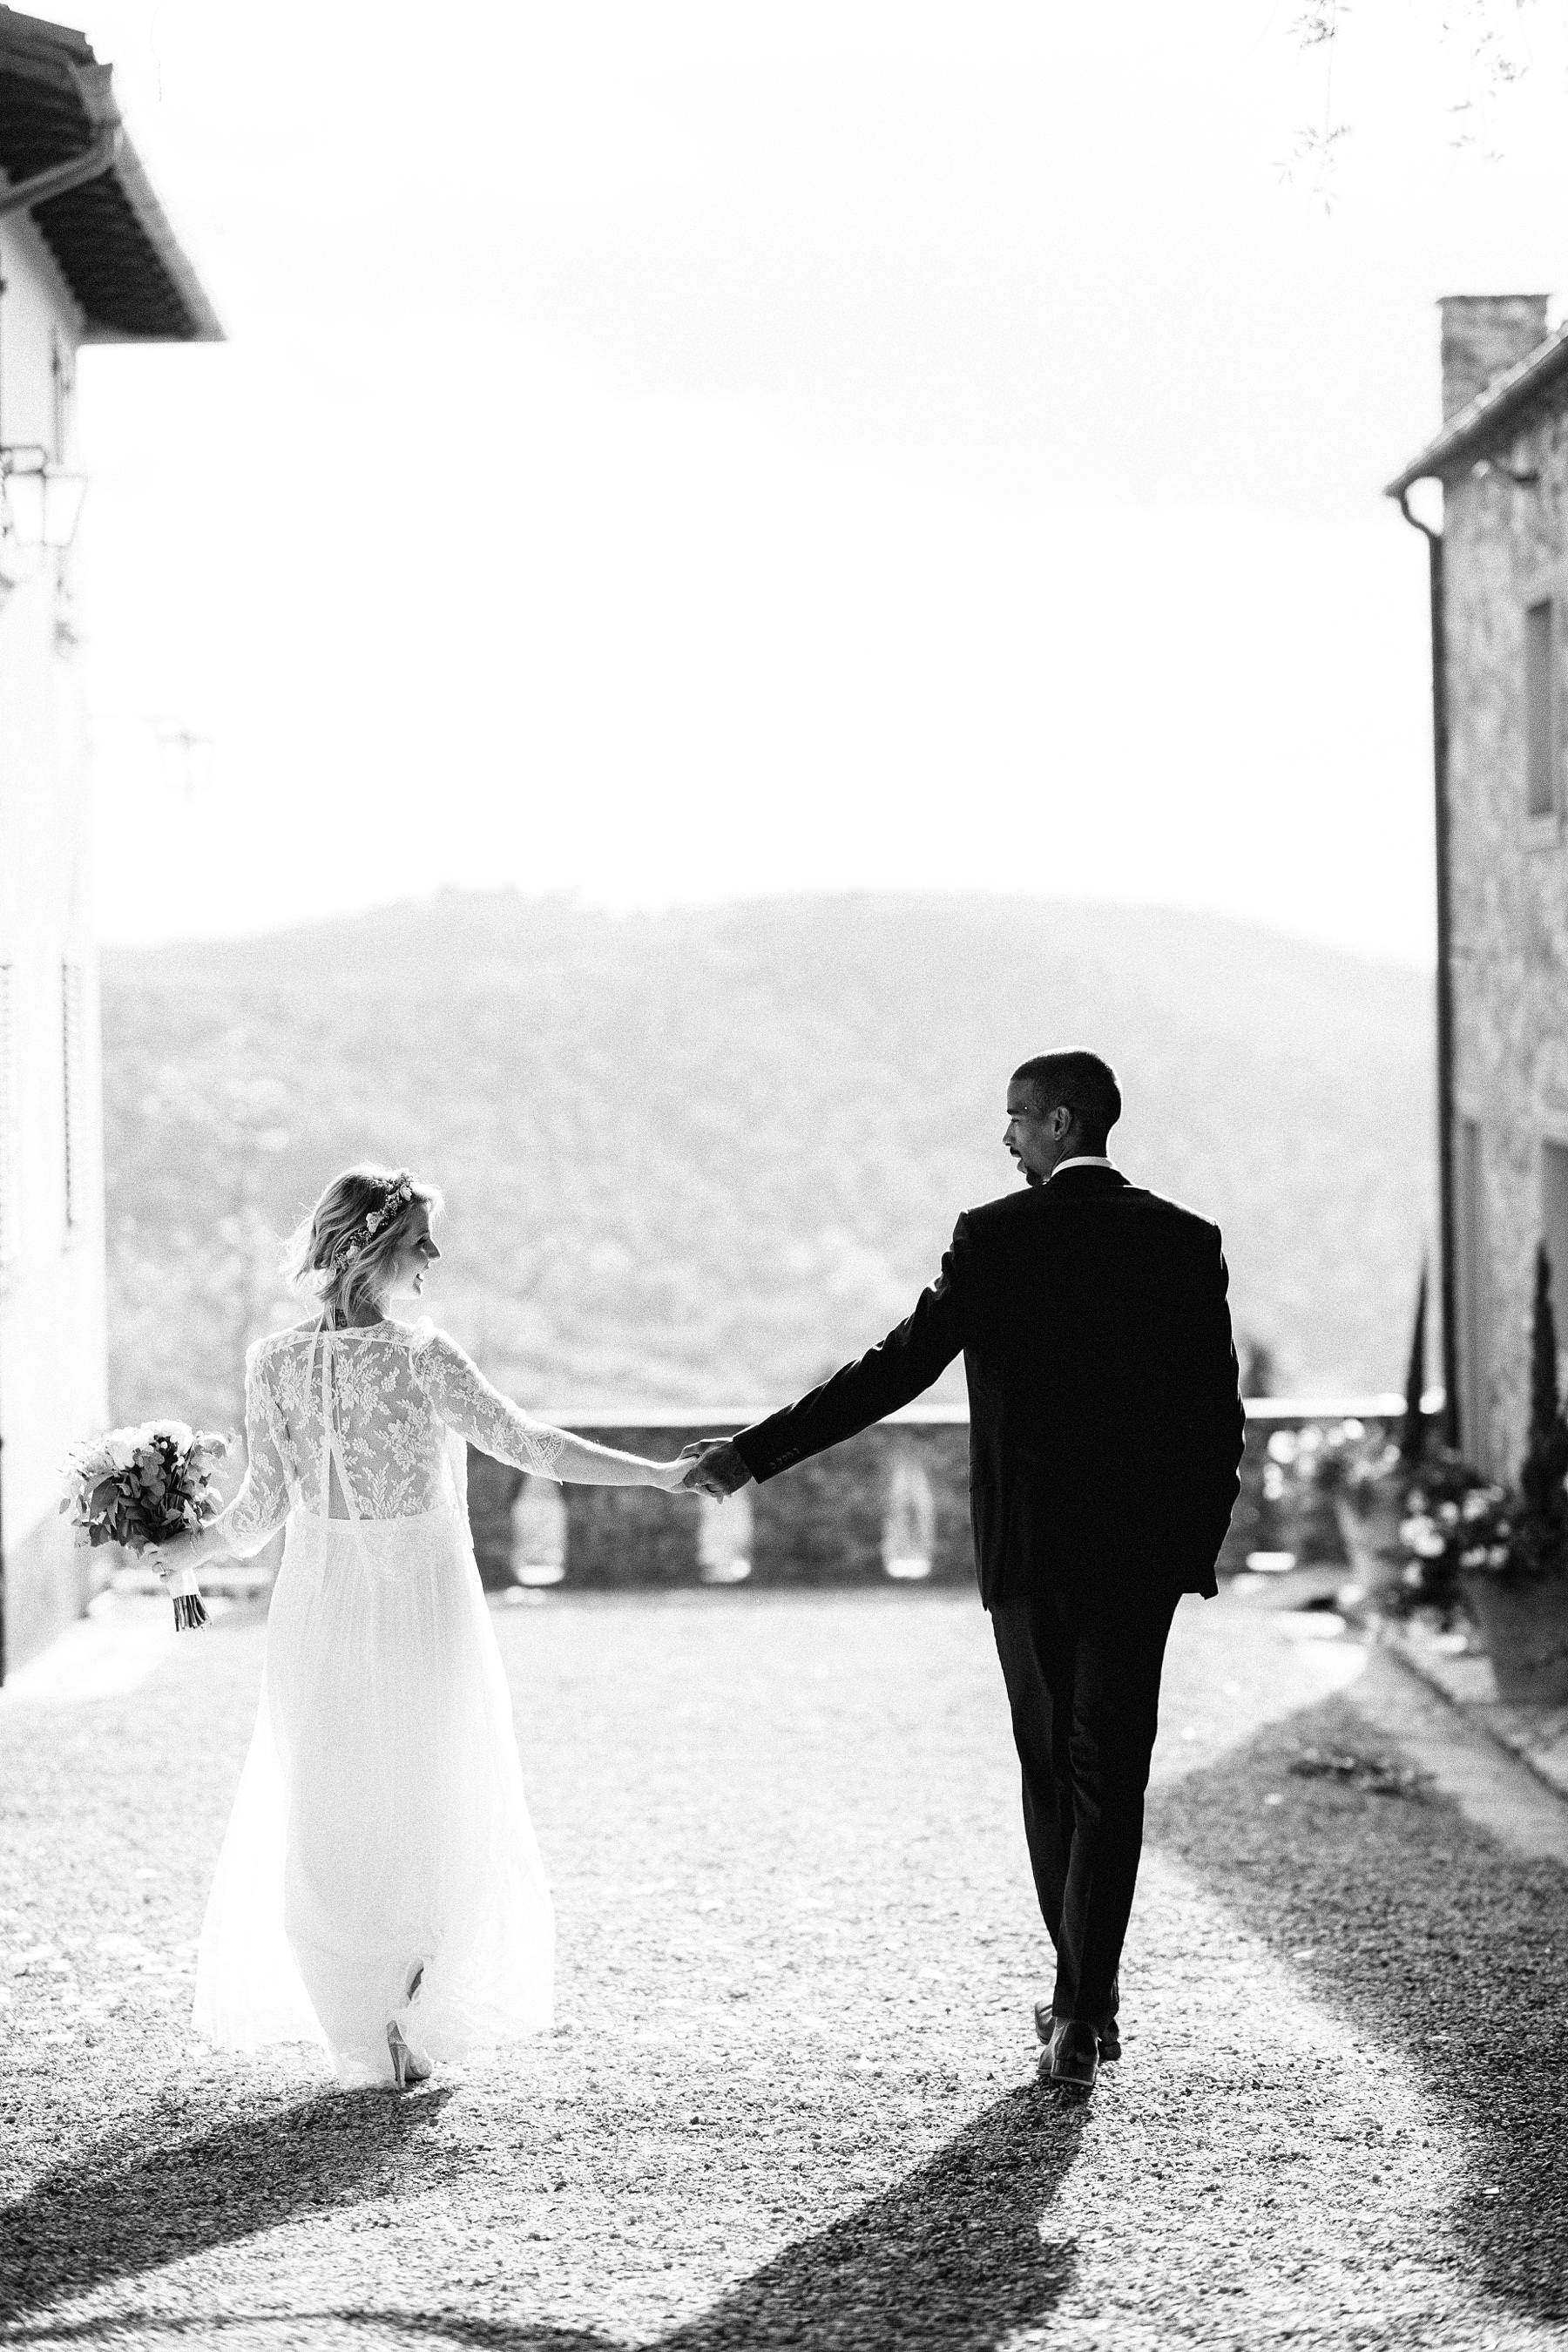 Lovely walk photo tour with bride Isabella in her Laure De Sagazan dress and groom Tanaka in his Hugo Boss suit at the historic residence of Montelucci Country Resort located between Chianti and Valdarno a perfect place for a destination wedding in Tuscany countryside